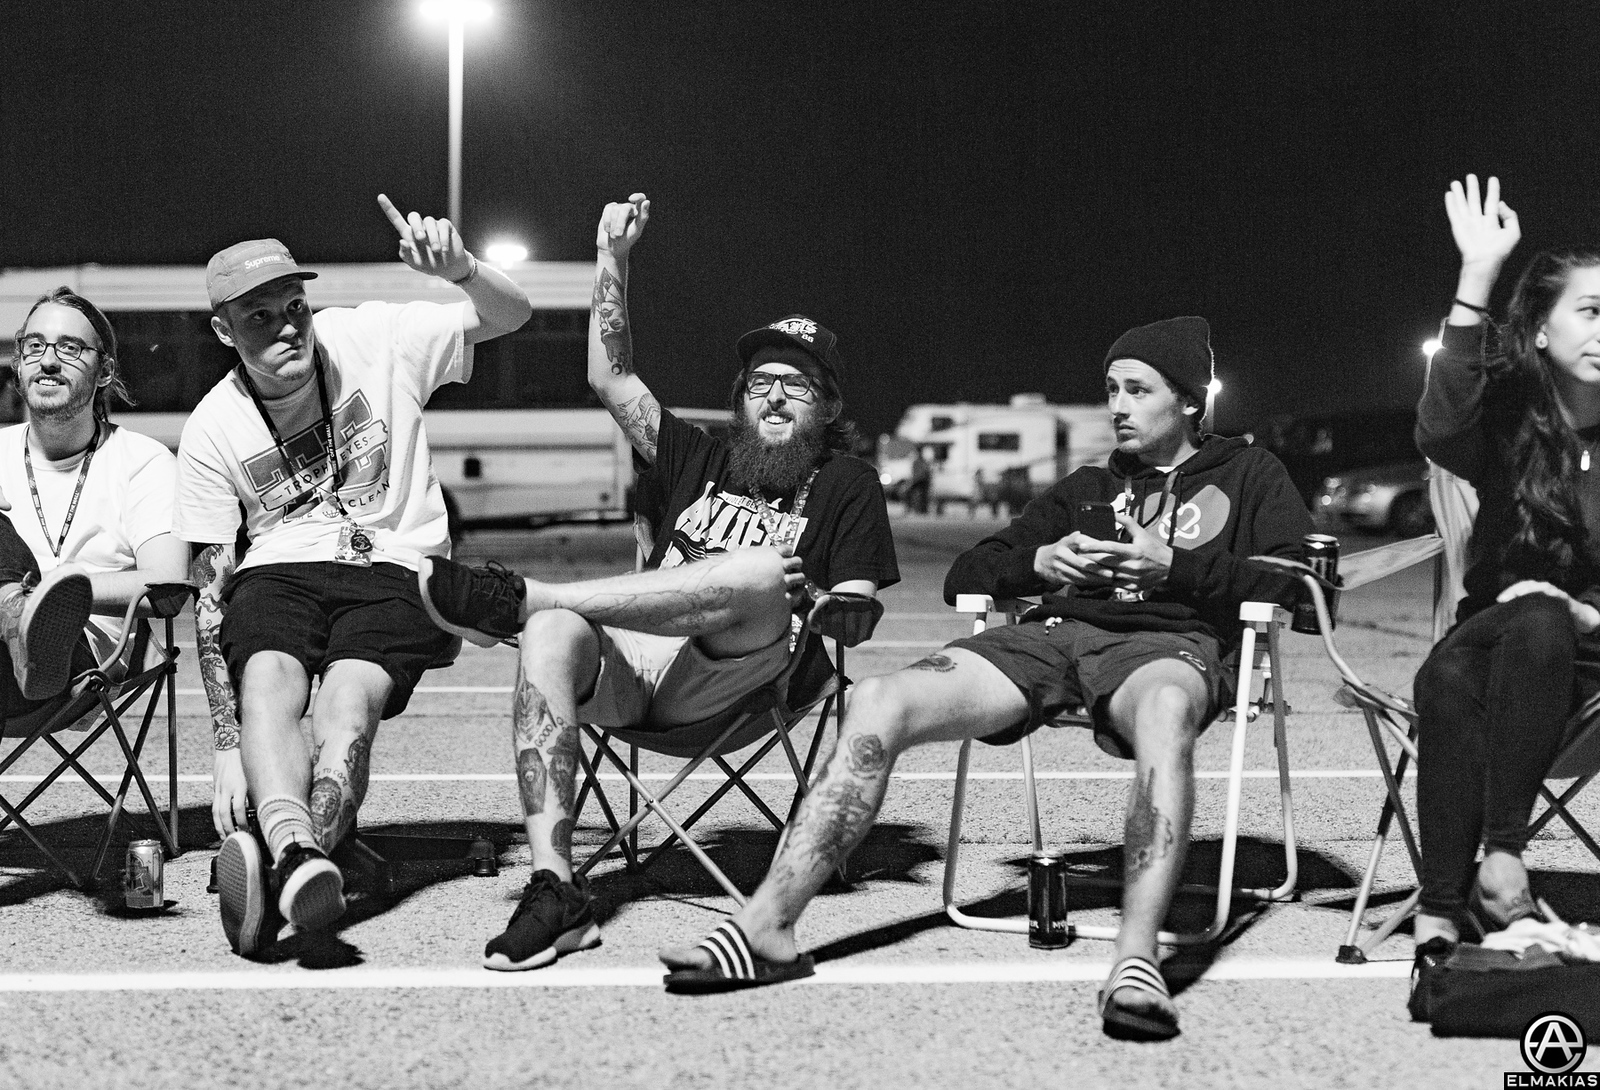 Neck Deep hangs at Vans Warped Tour 2015 by Adam Elmakias